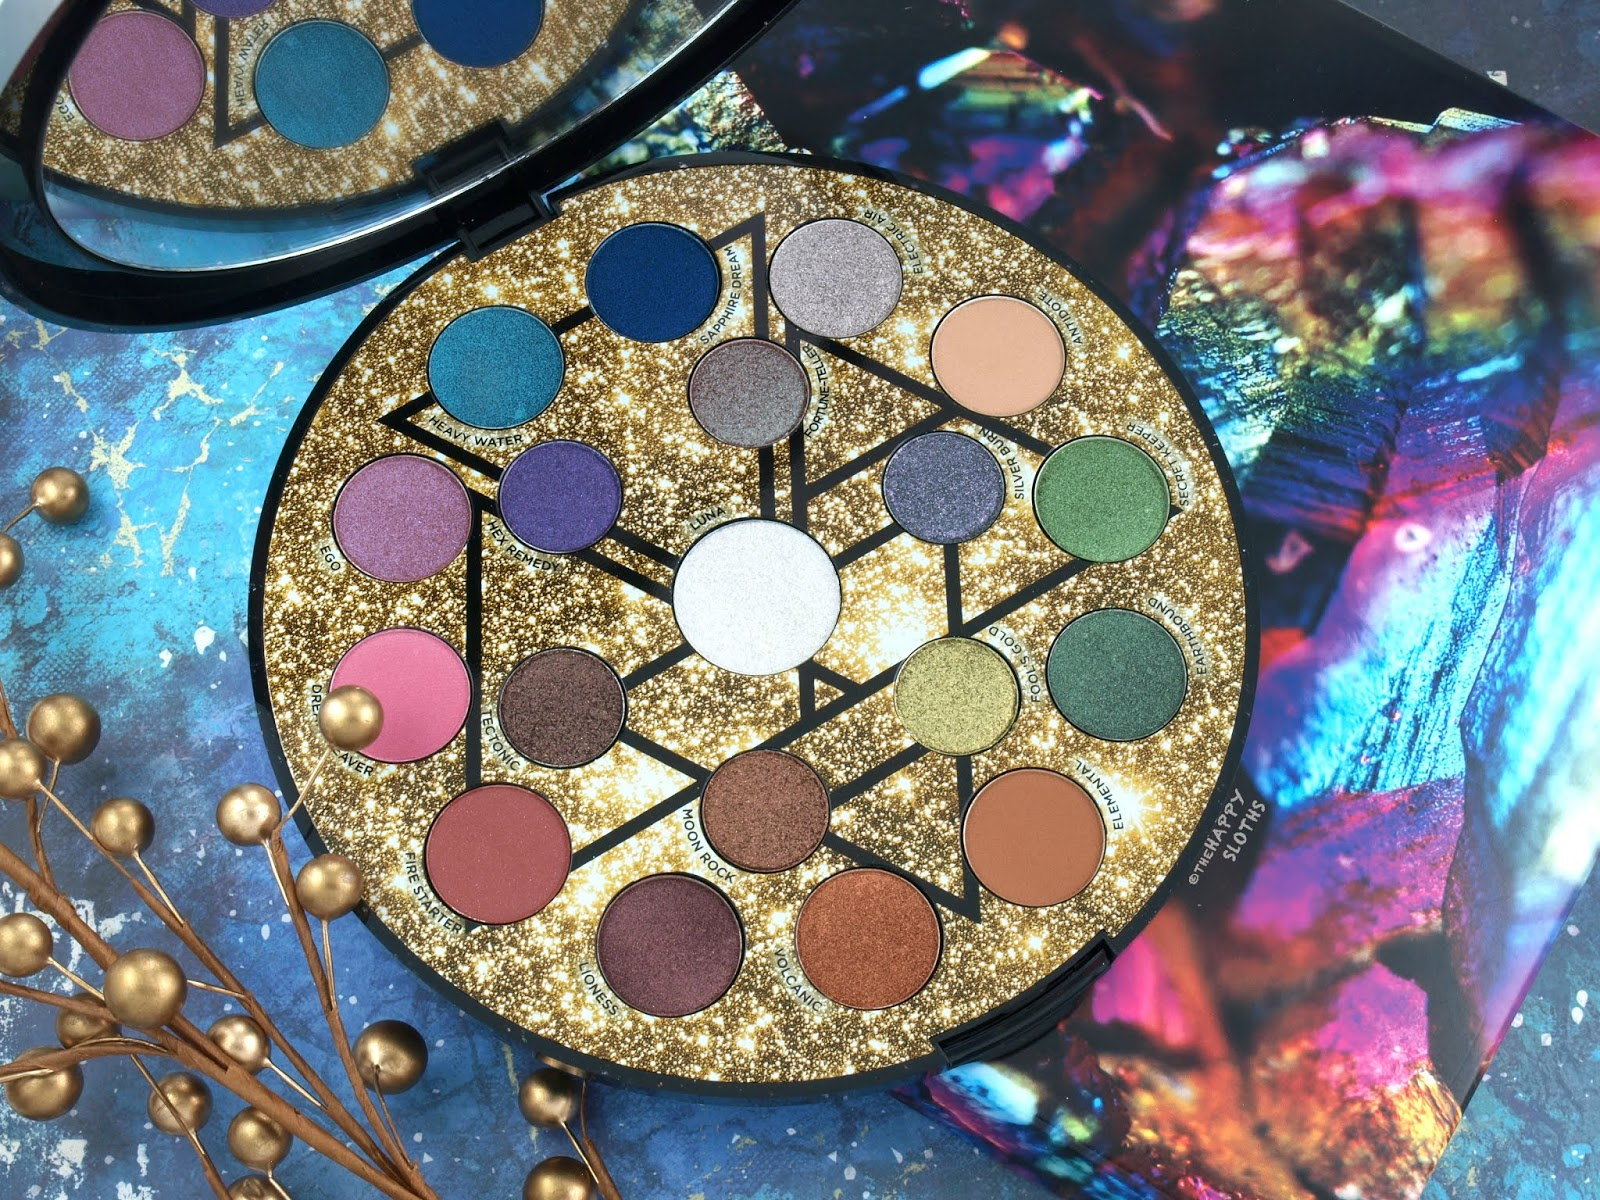 Urban Decay | Holiday 2018 Elements Eyeshadow Palette: Review and Swatches